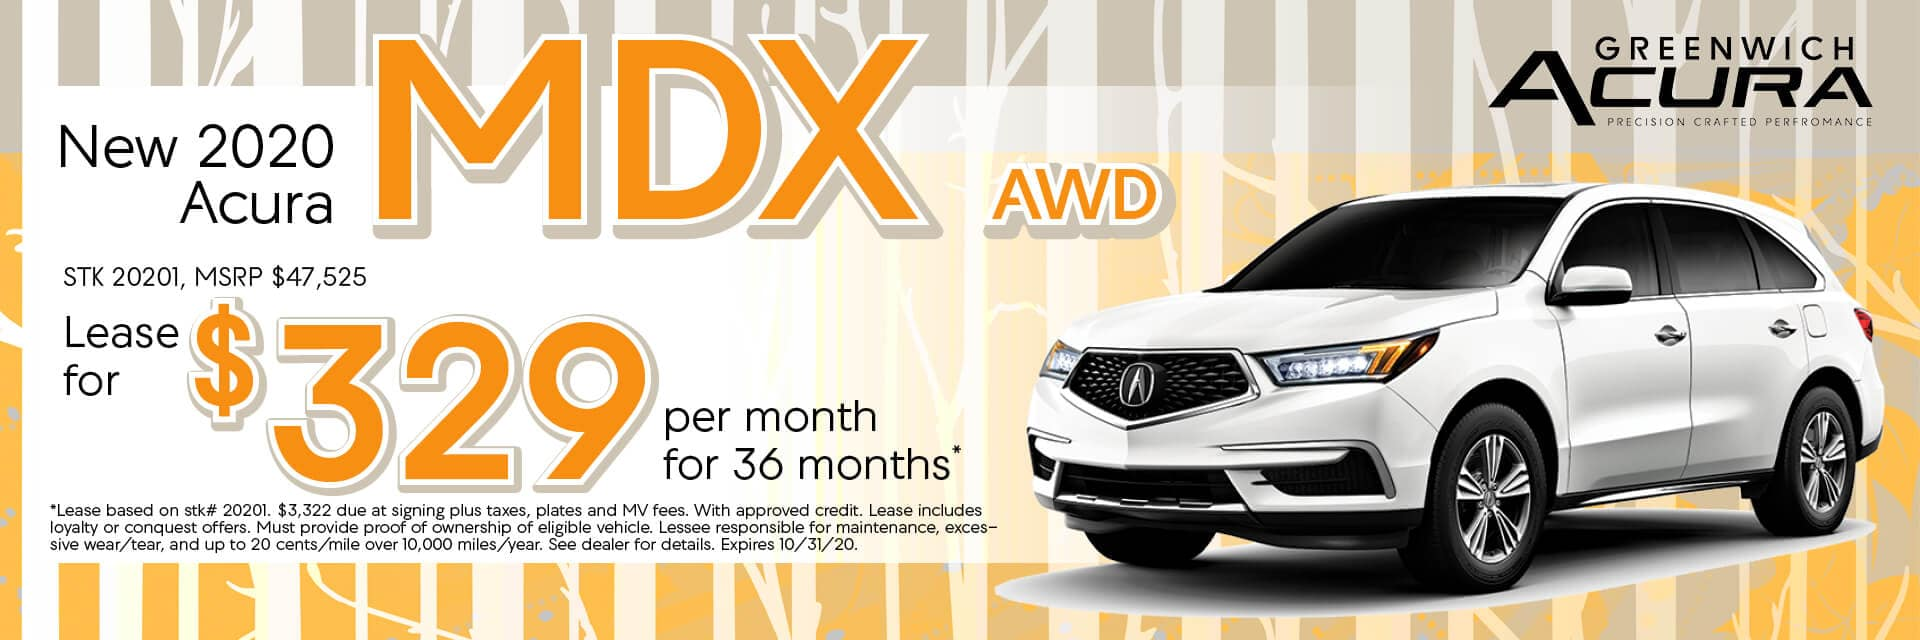 2020 Acura MDX | Lease for $329/mo. for 36 Mos. | Greenwich, CT